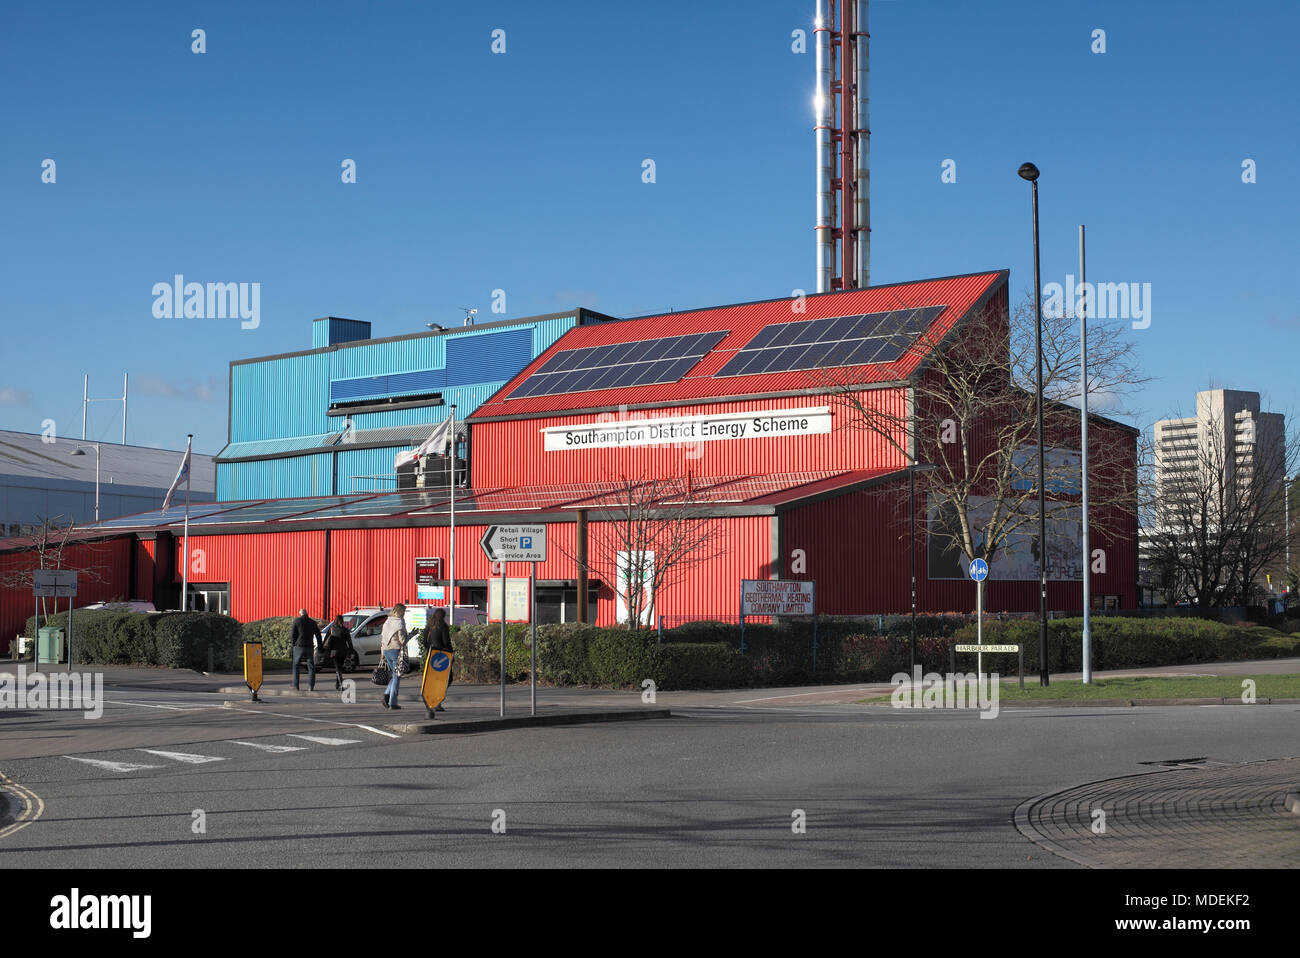 The Heat Station, part of the Southampton District Energy Scheme, where geothermal heat is utilised in a district heating system. - Stock Image